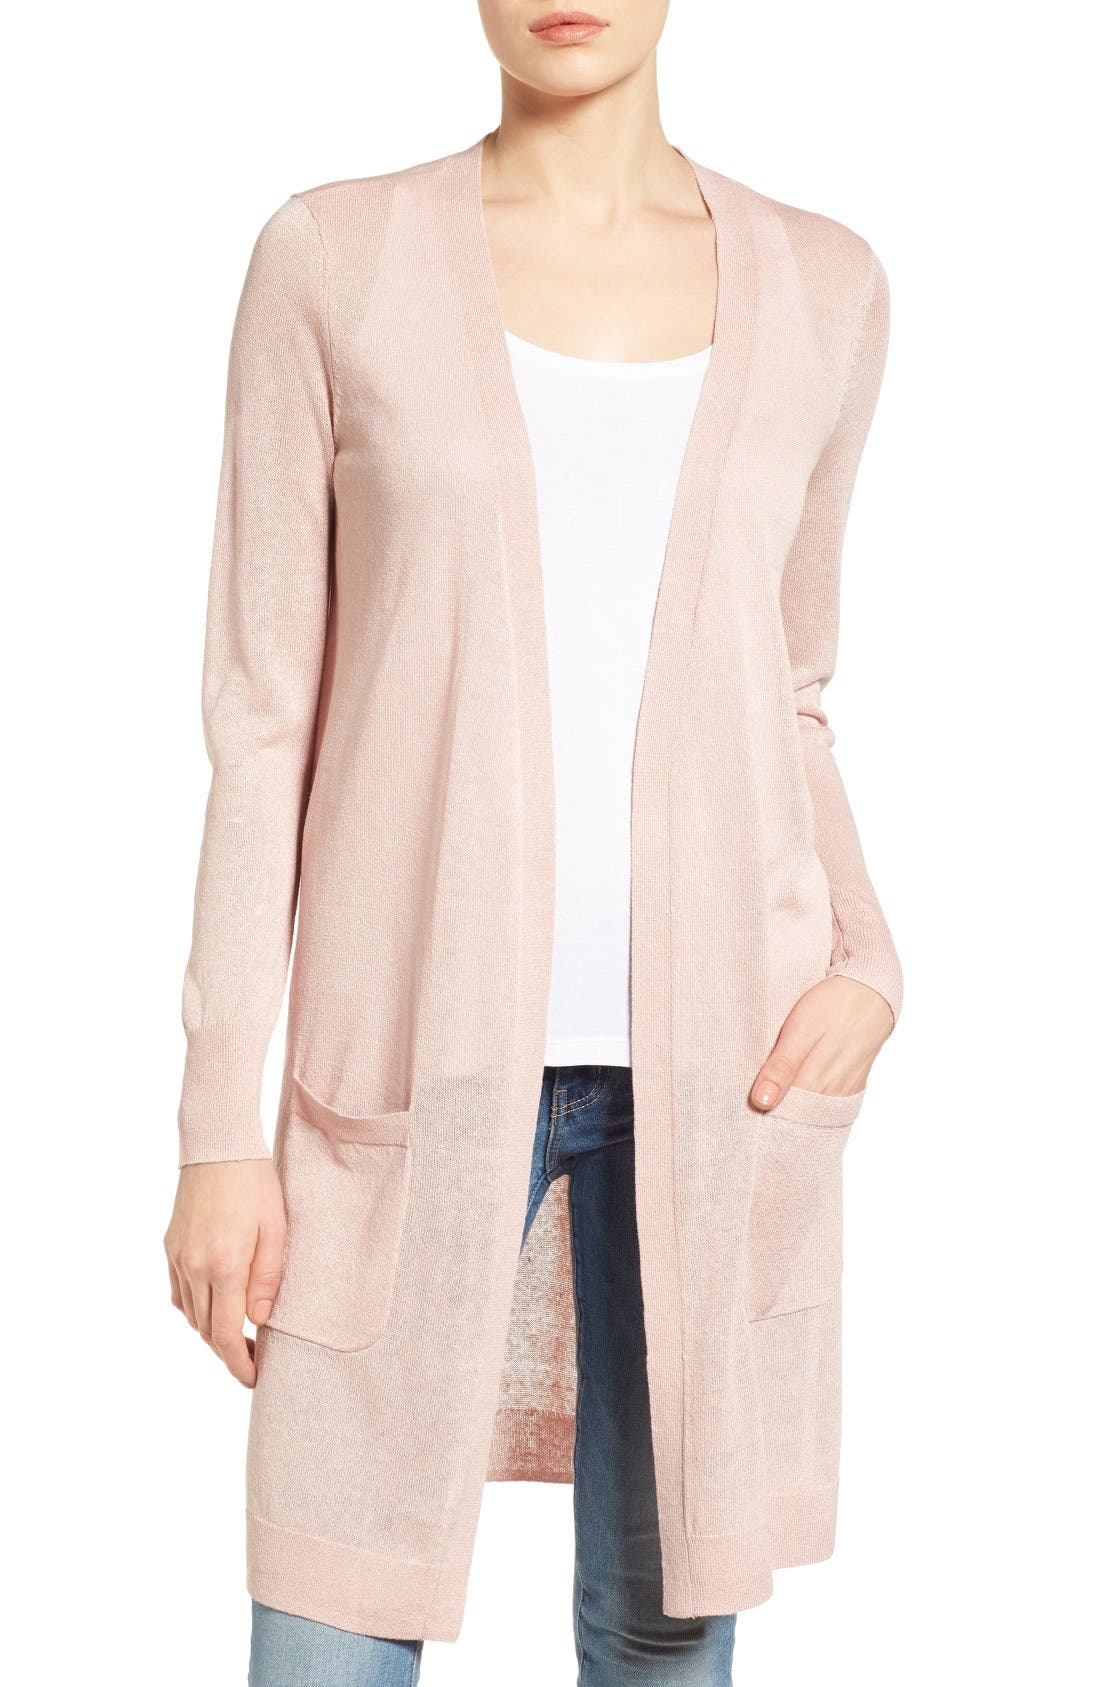 Alternate Image 1 Selected - Halogen® Long Linen Blend Cardigan (Regular & Petite)